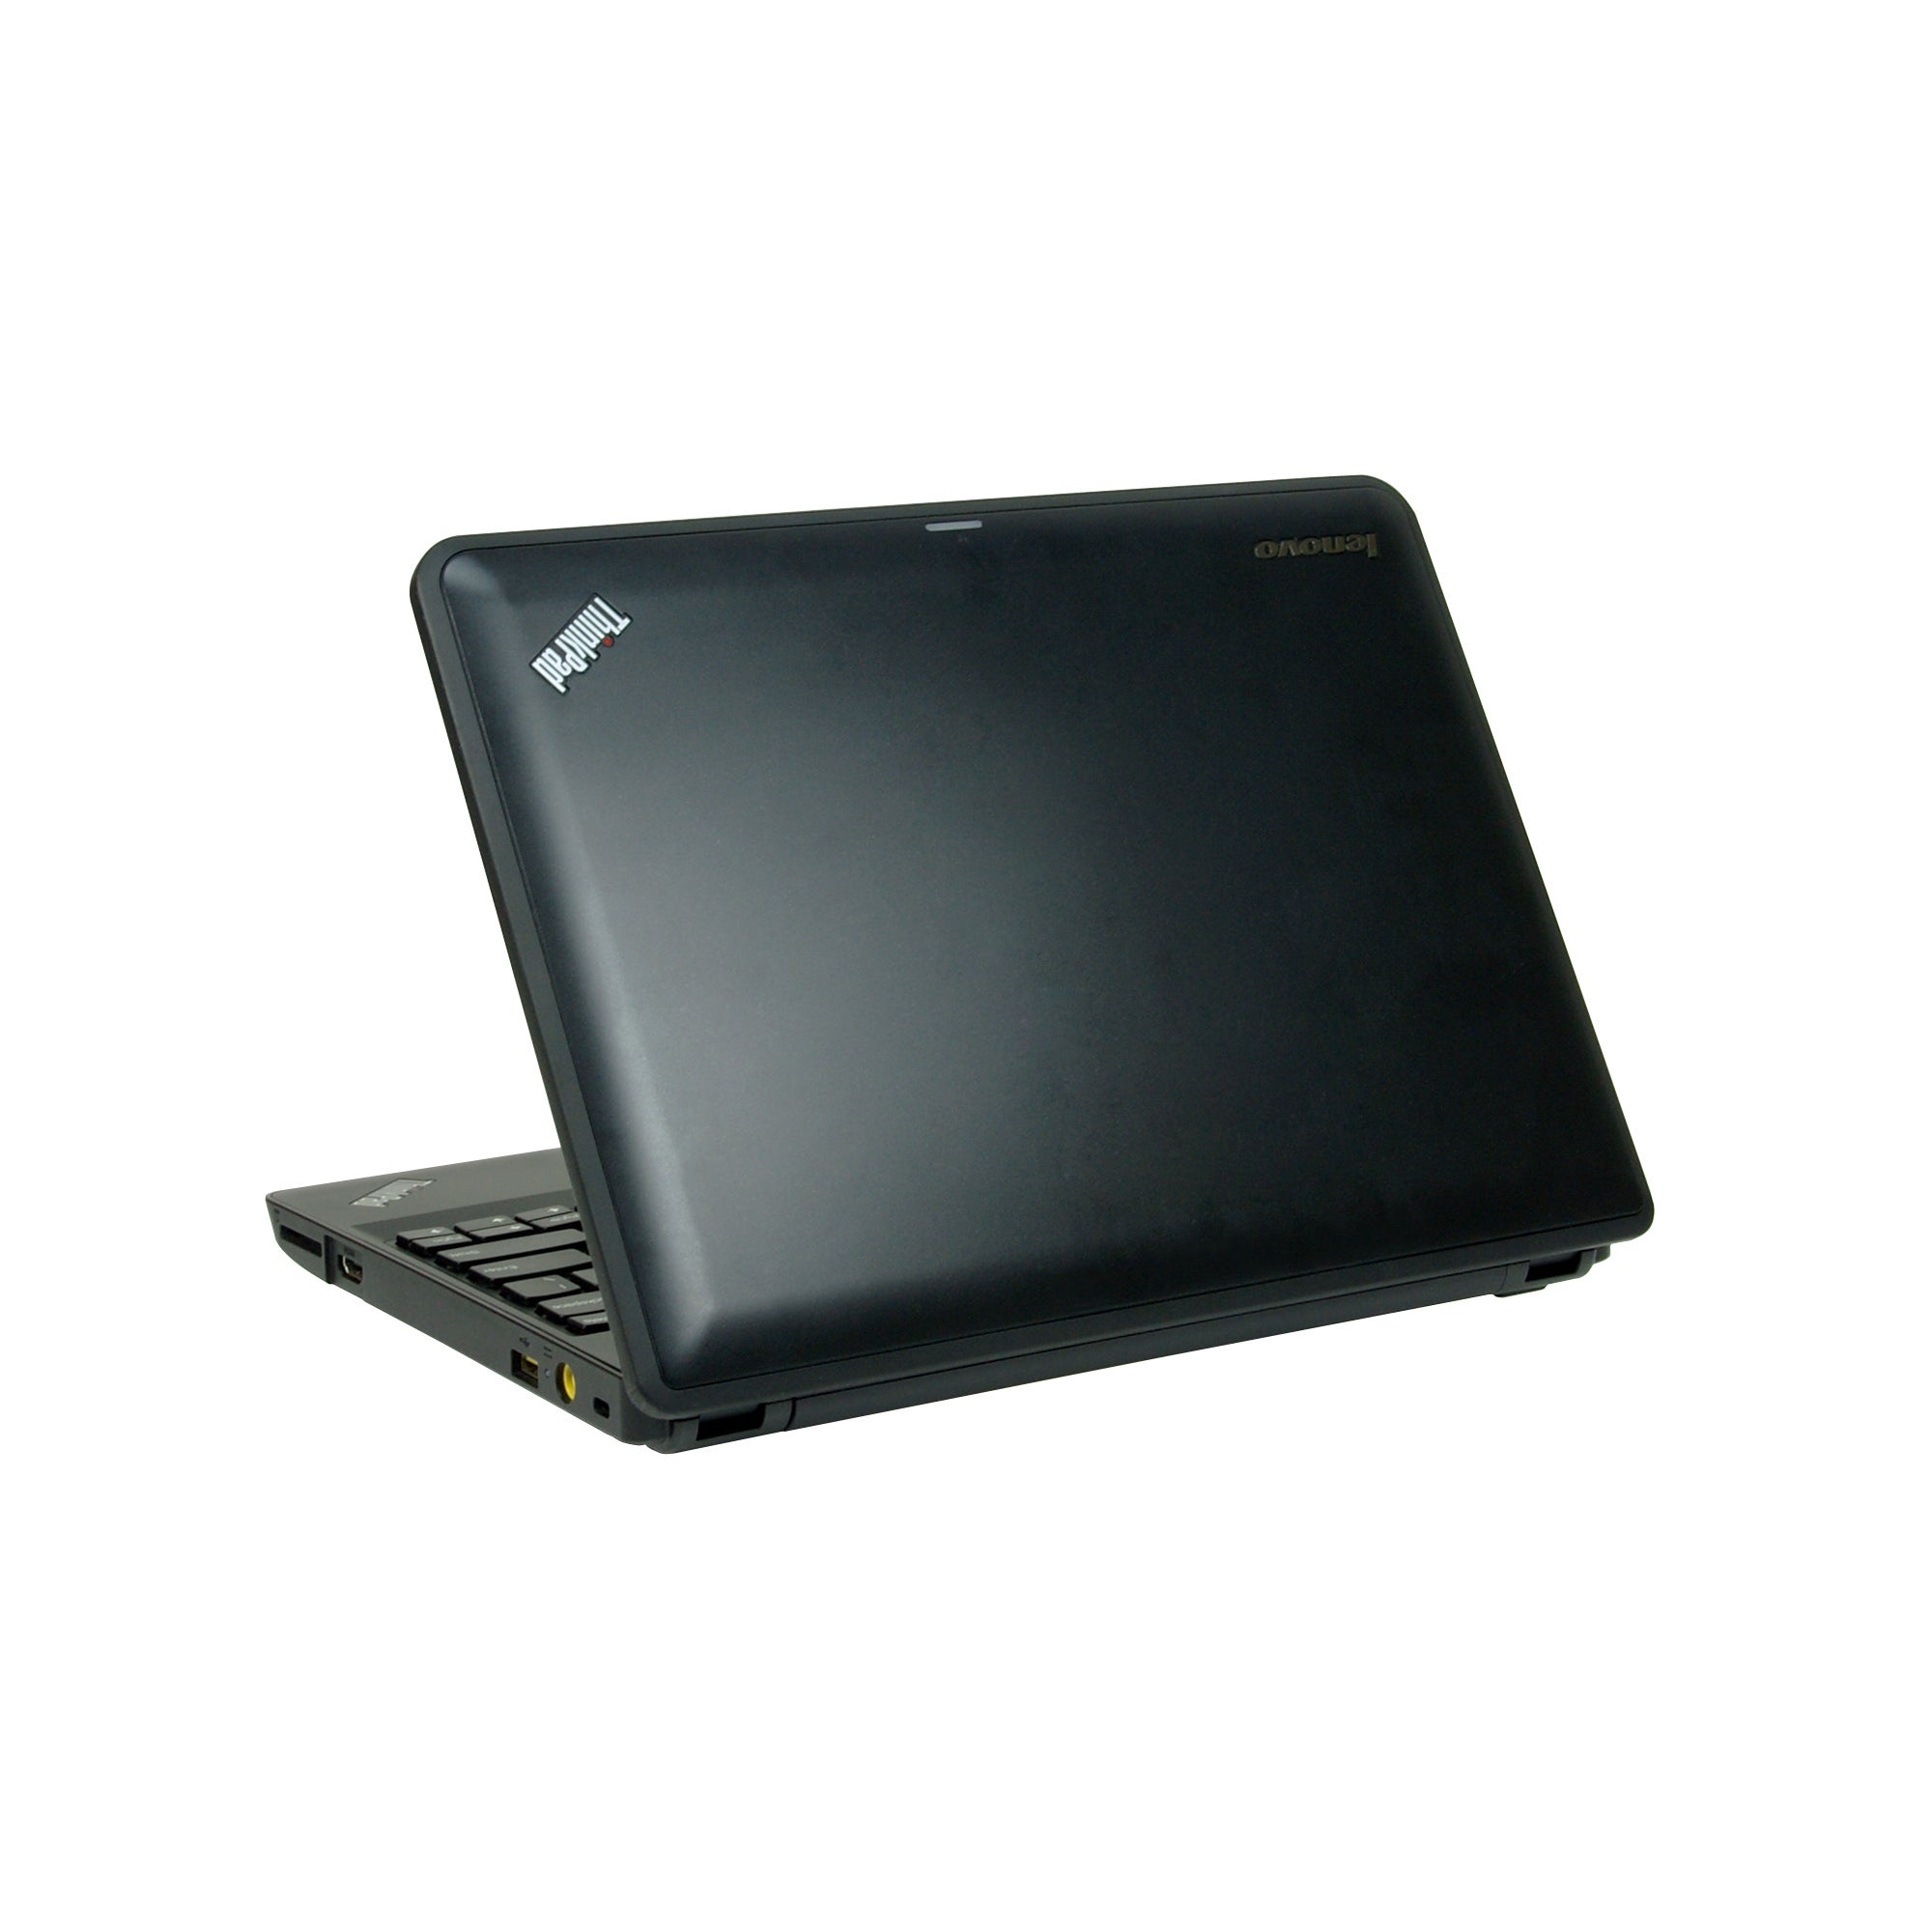 amd a4 3330mx wifi driver for windows 7 free download